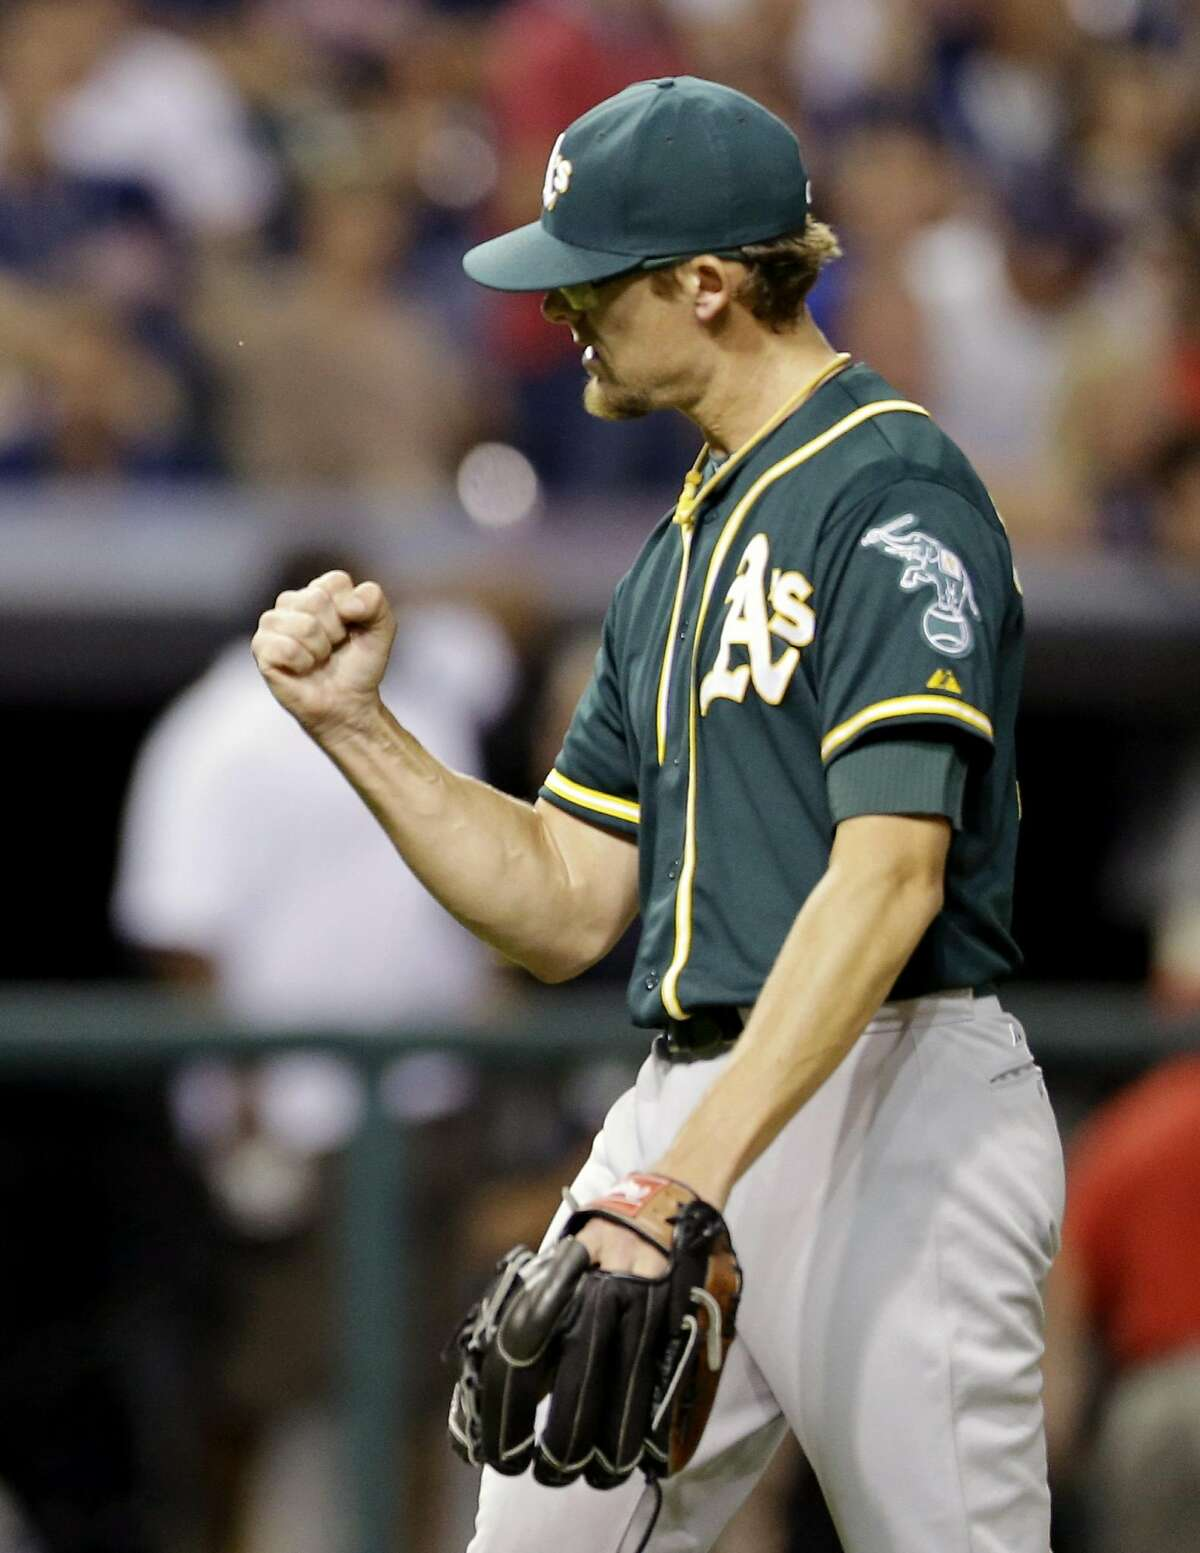 Oakland Athletics relief pitcher Tyler Clippard pumps his fist after the Athletics defeated the Cleveland Indians 5-4 in a baseball game, Saturday, July 11, 2015, in Cleveland.